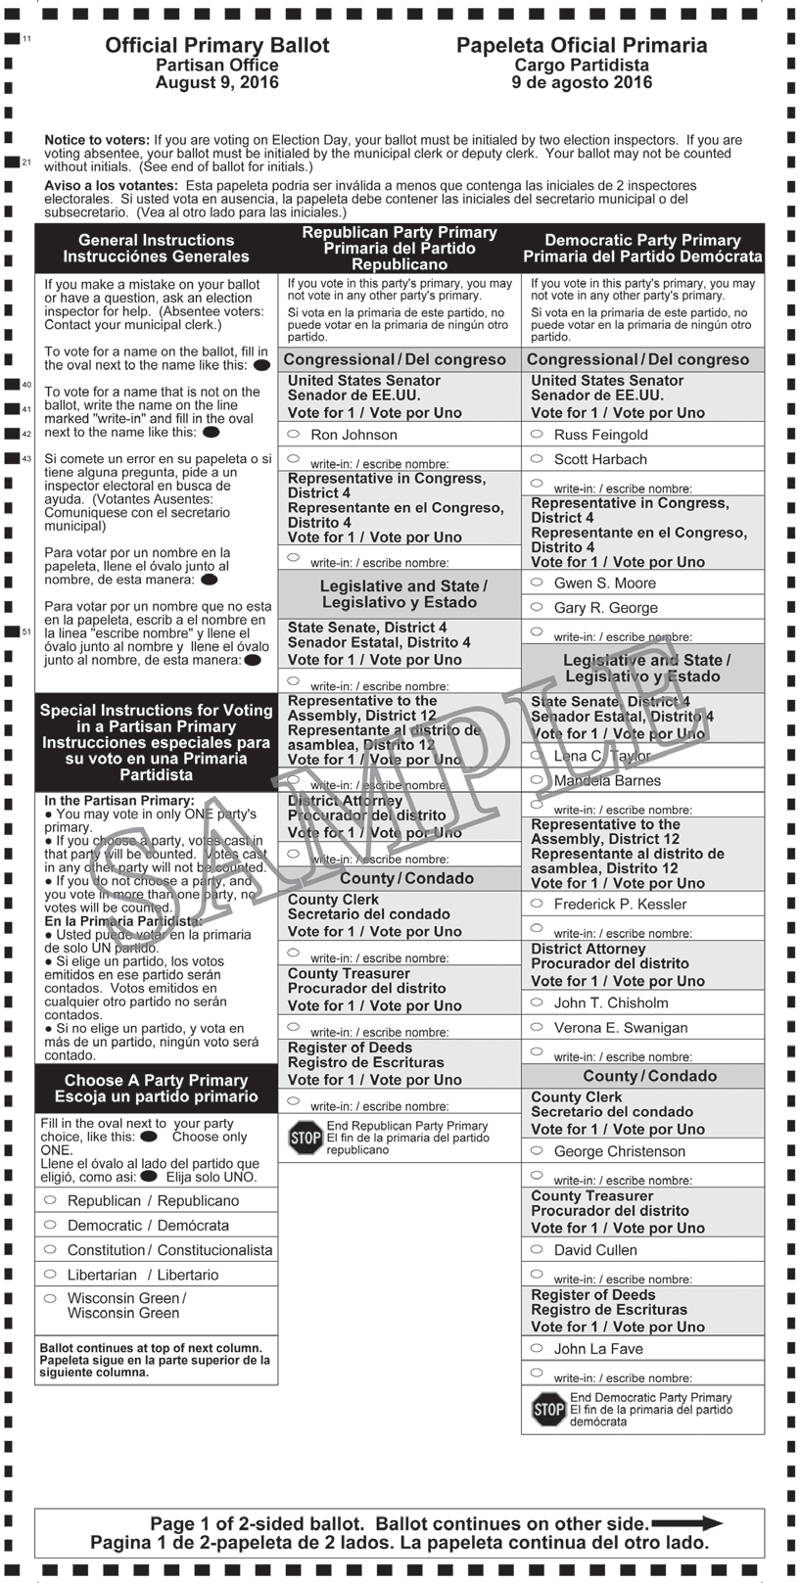 optical-scan-sample-ballot-partisan-office-primary-august-9th-page-1